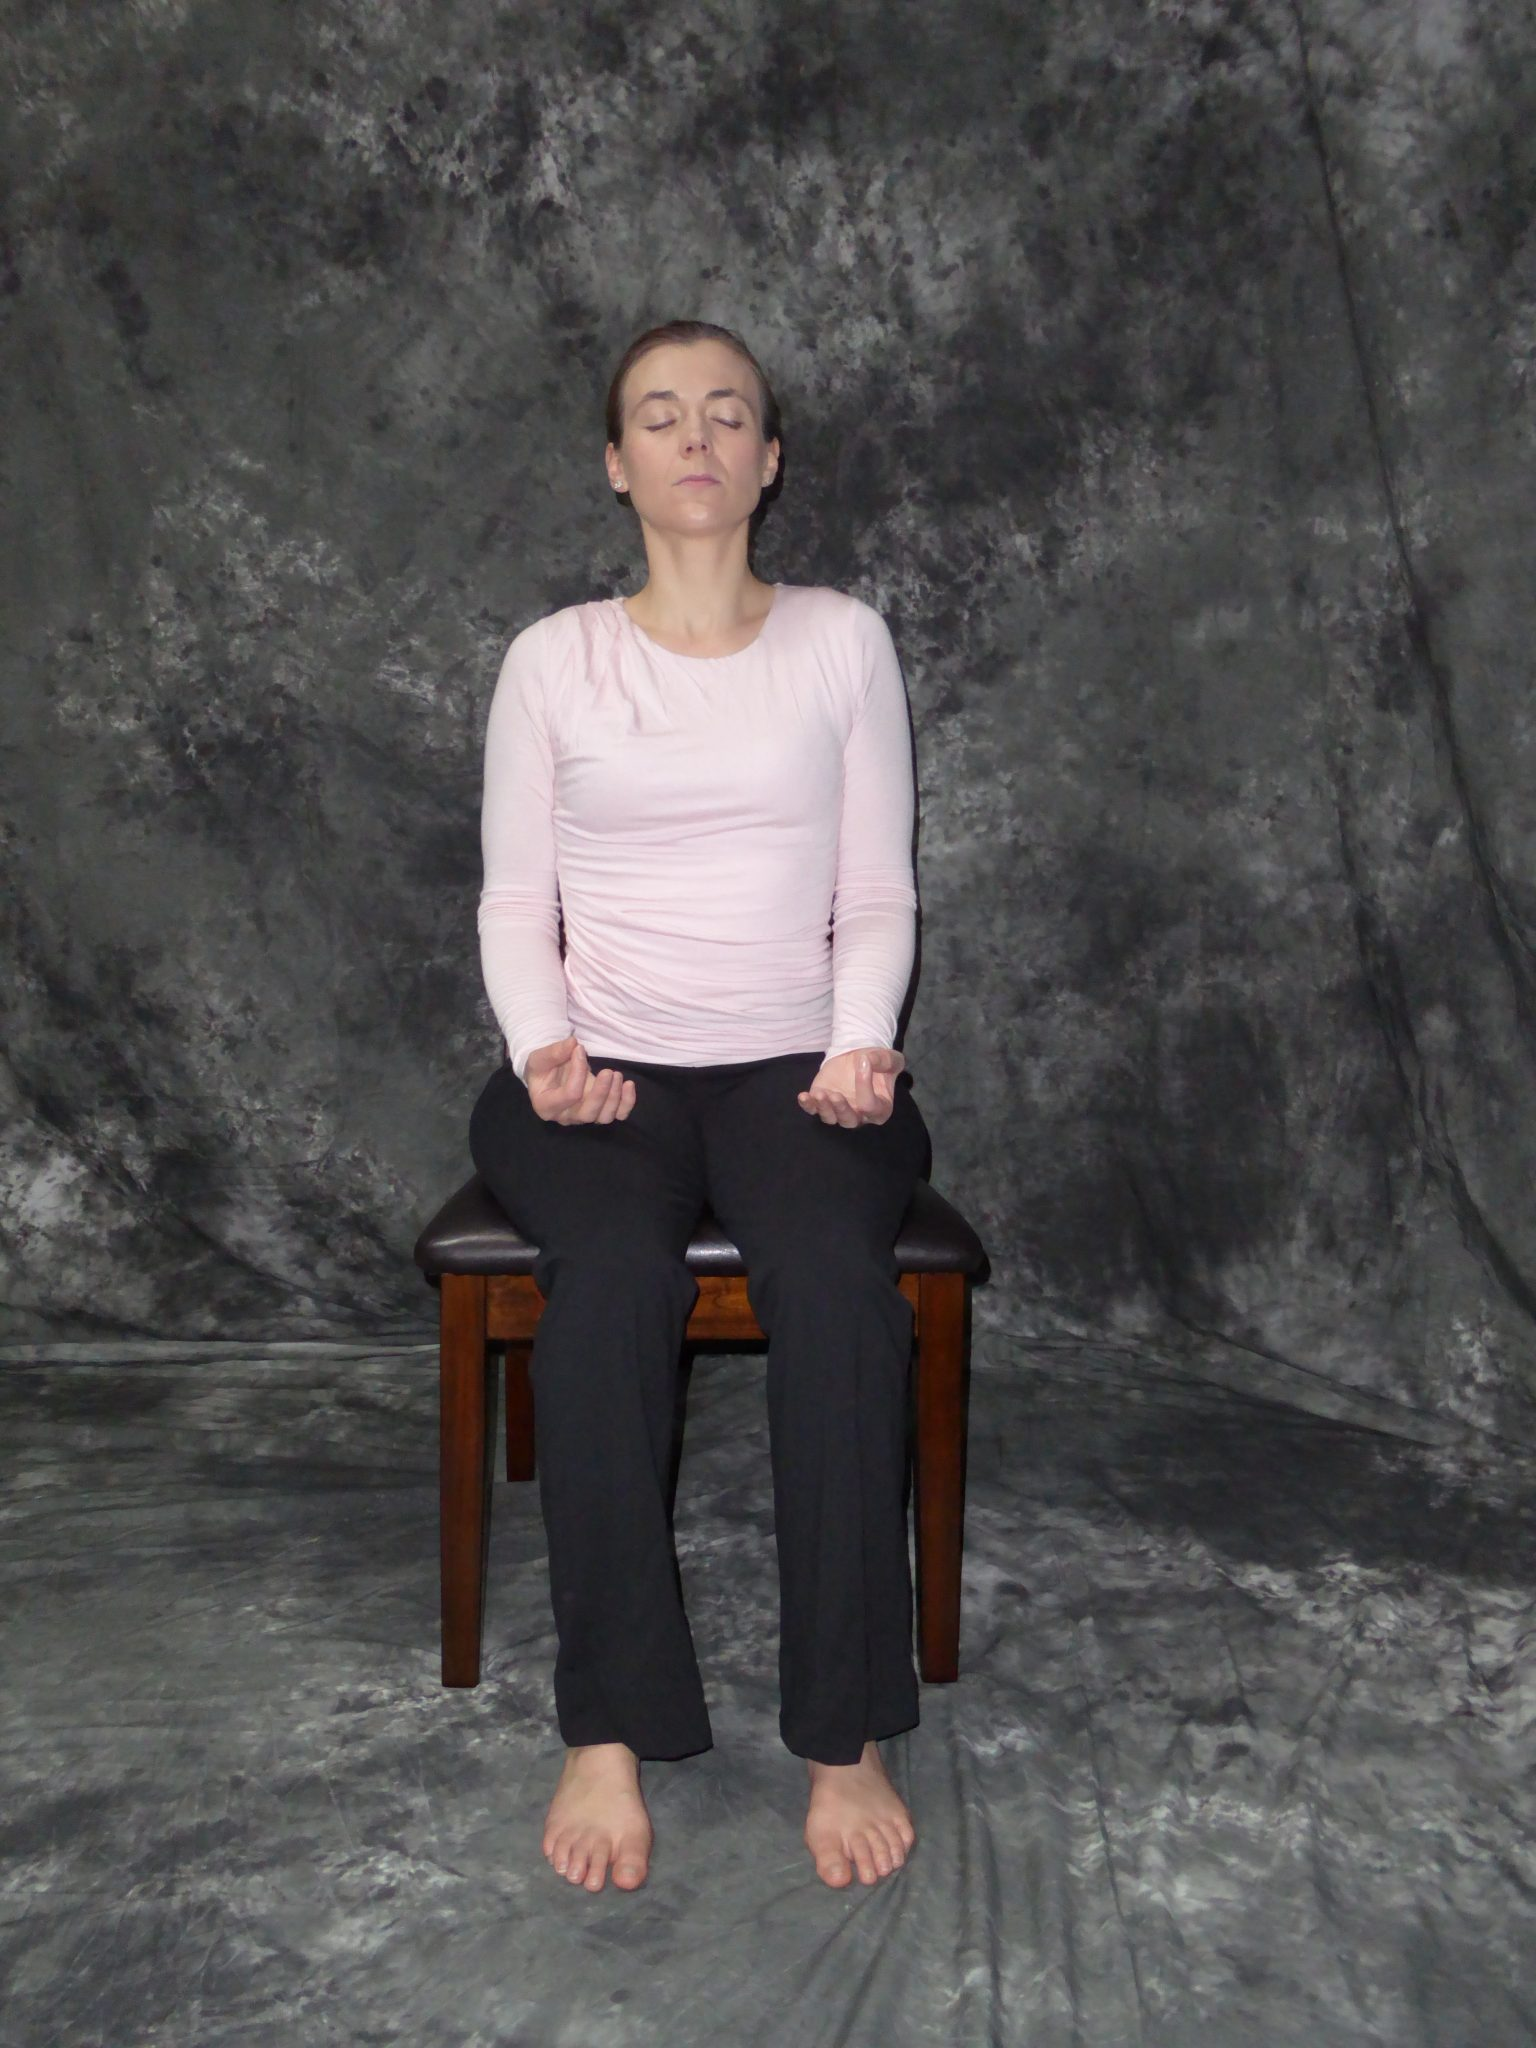 Chair Yoga Meditation k bonura